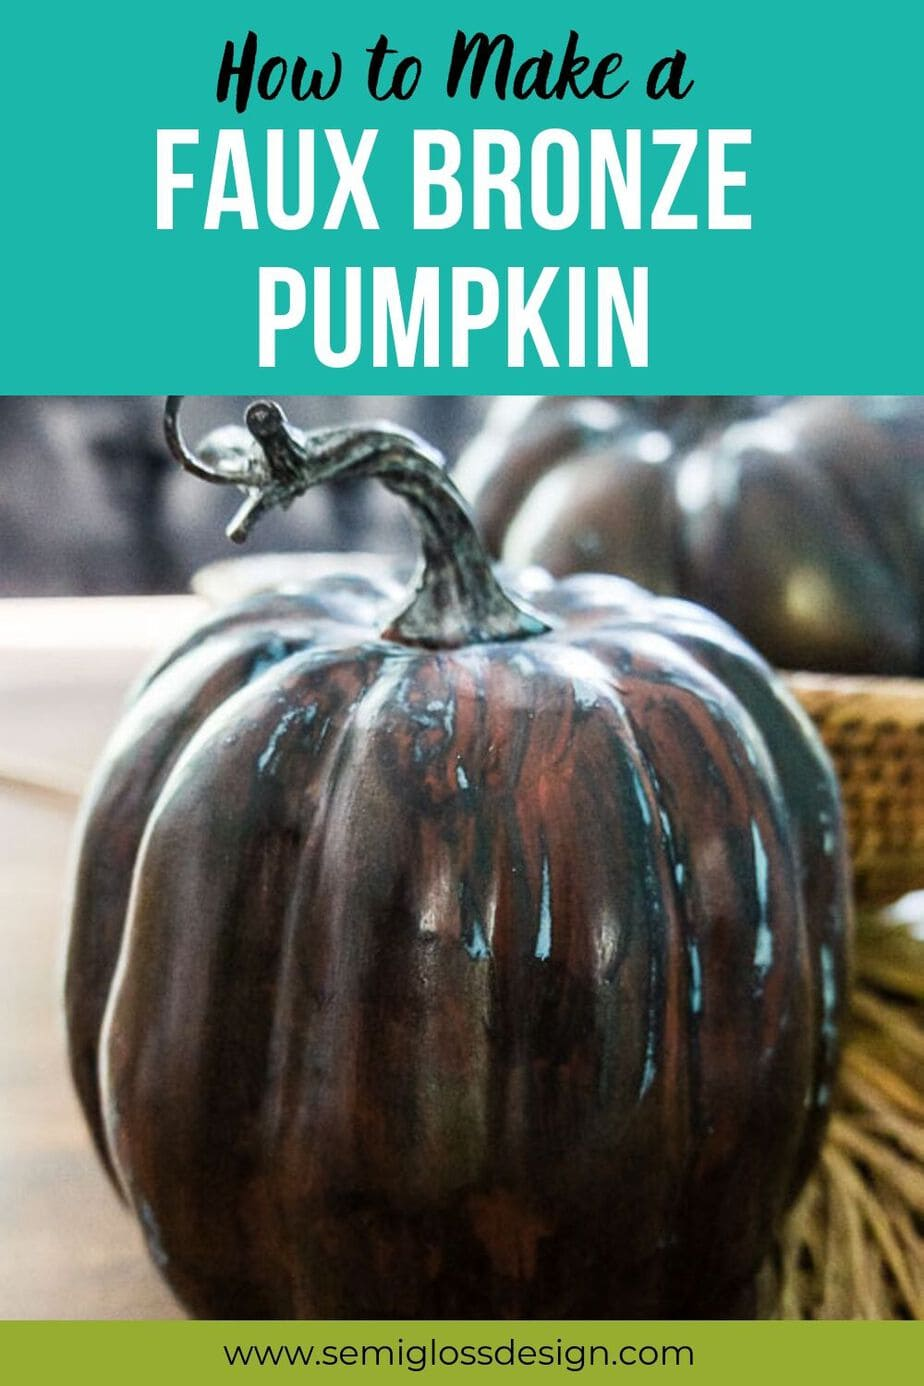 faux bronze pumpkin DIY